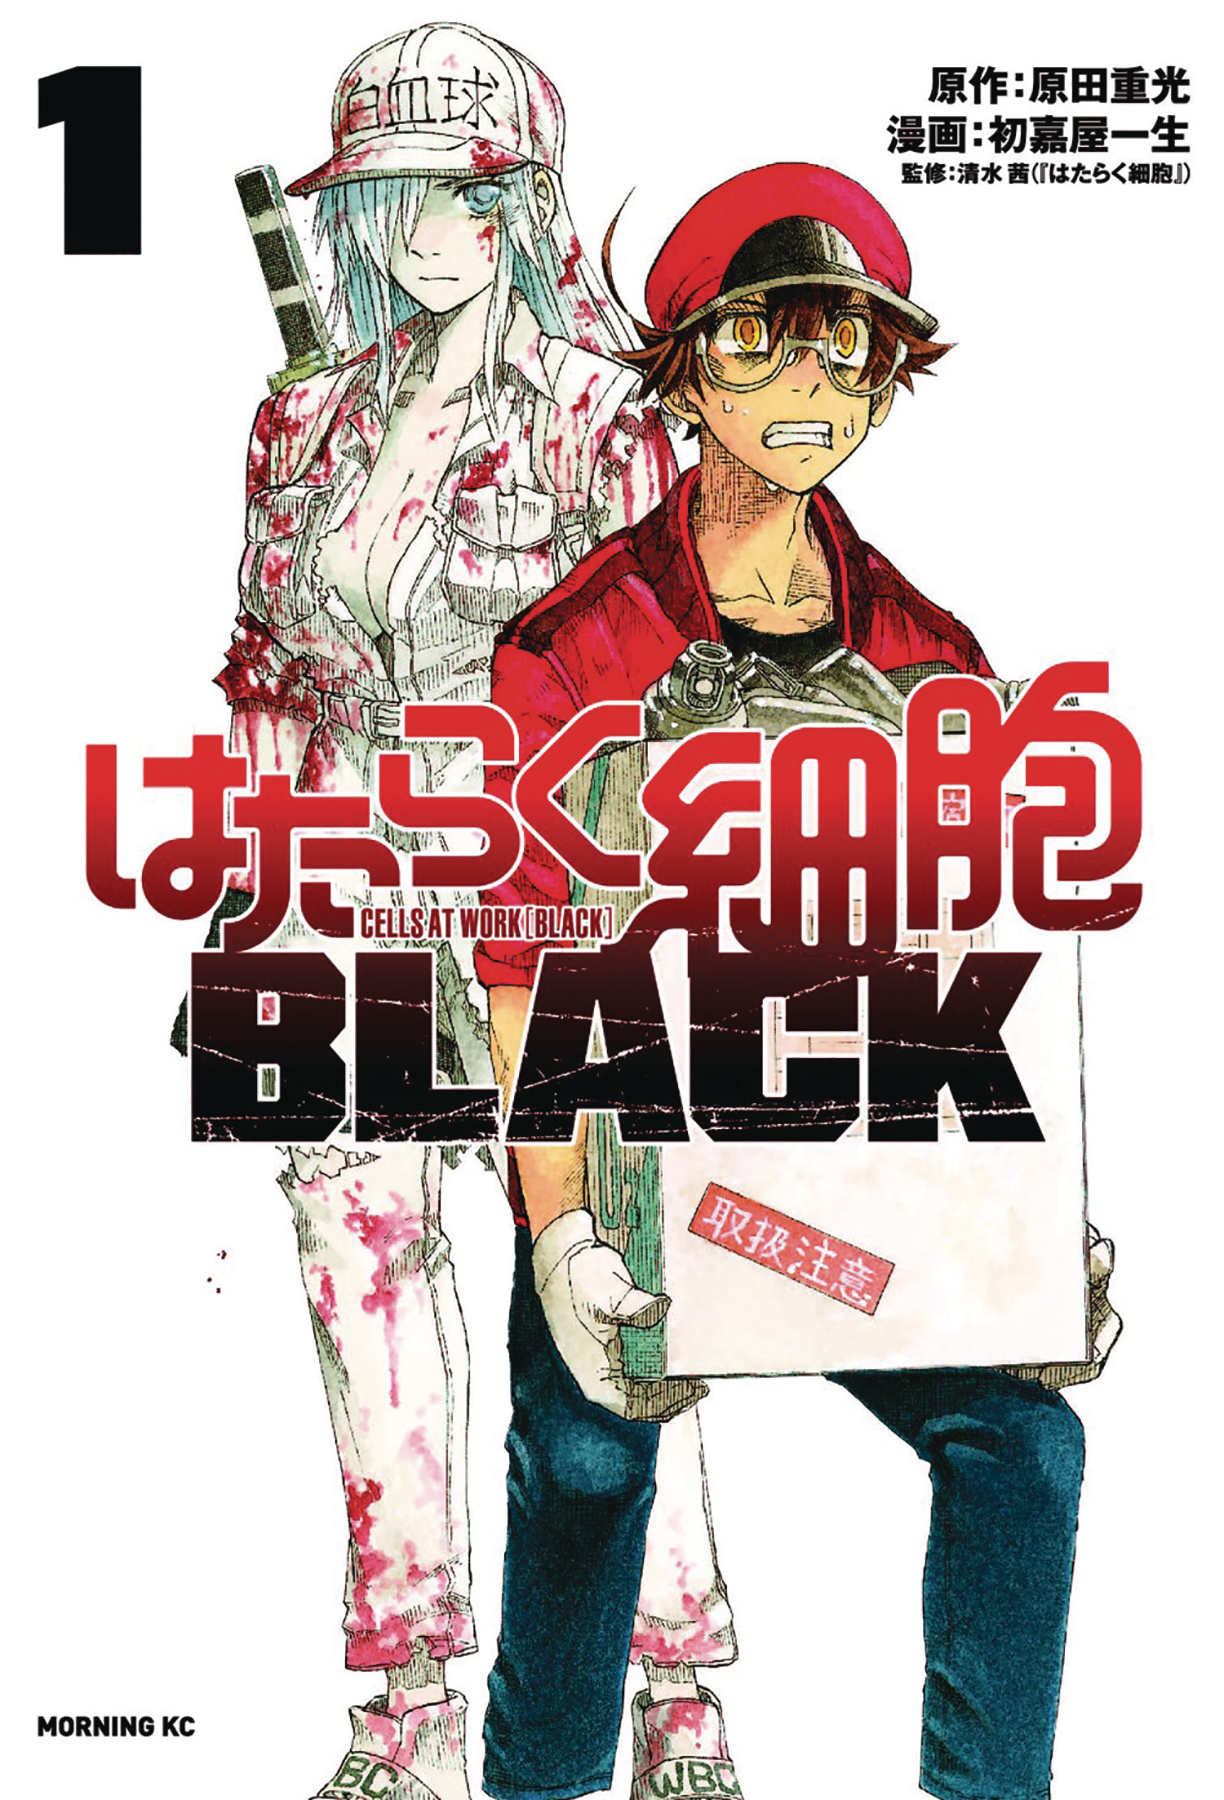 CELLS AT WORK CODE BLACK GN VOL 01 (O/A)